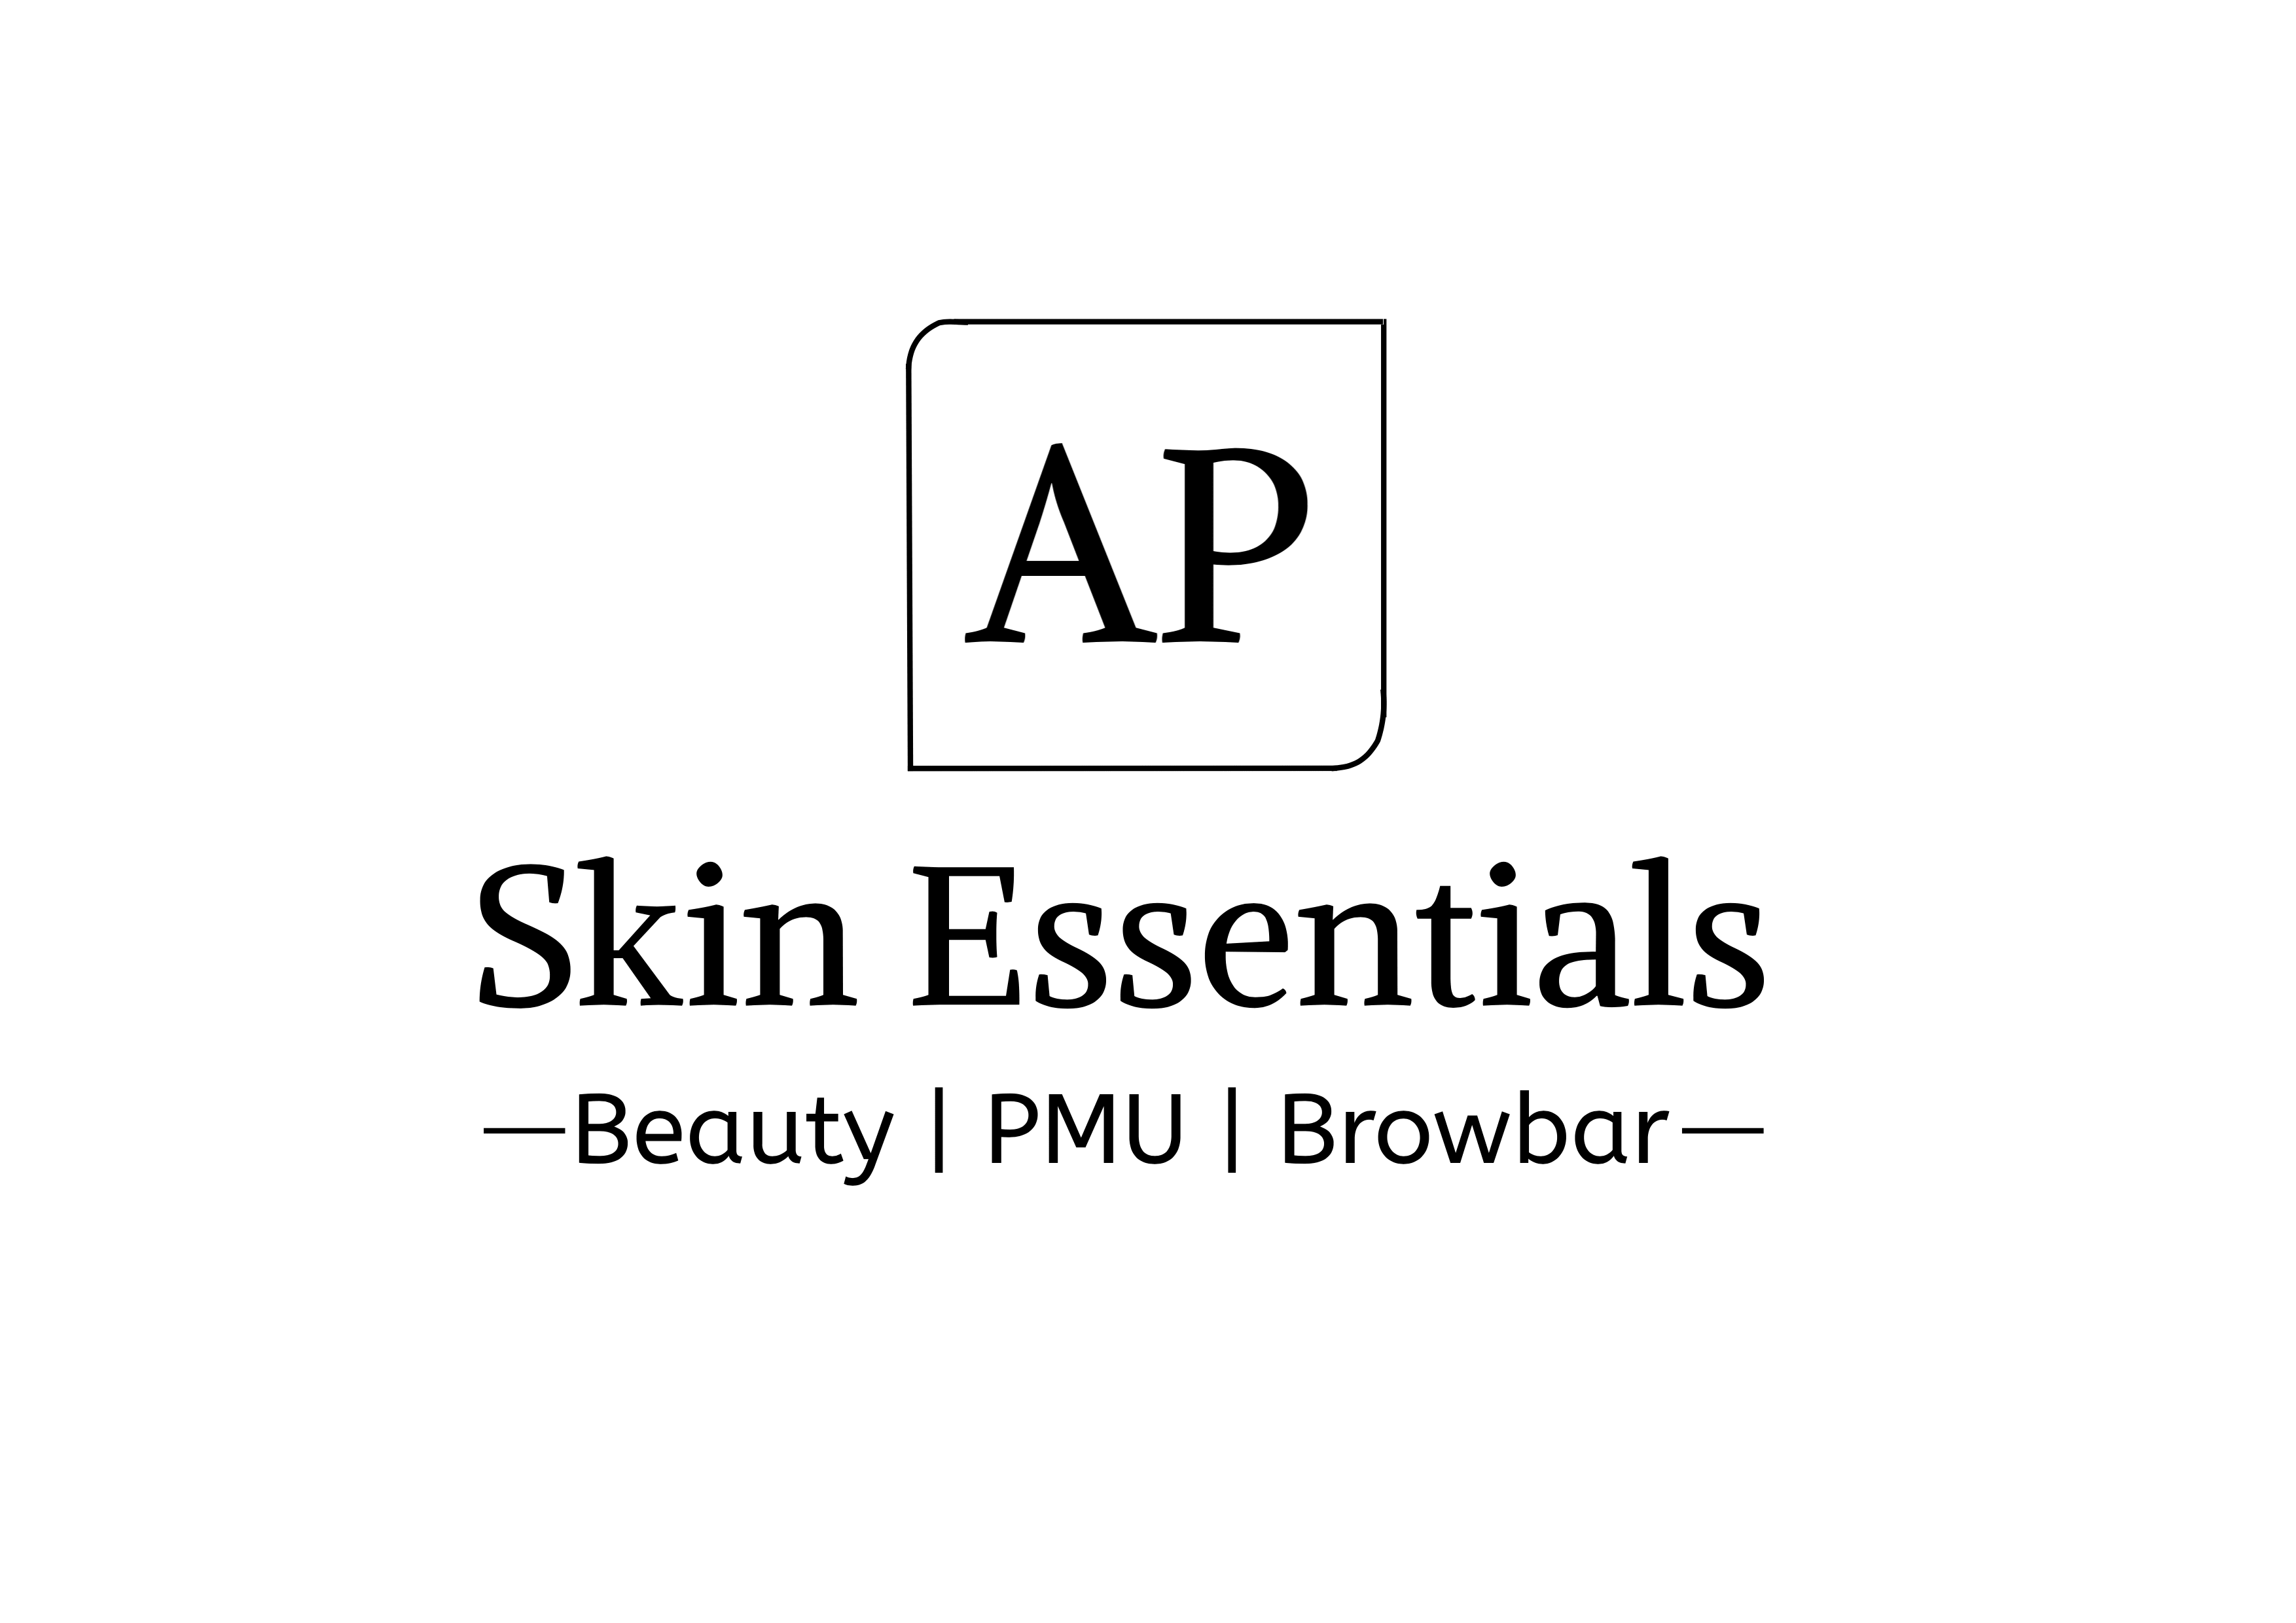 Skin Essentials Shop